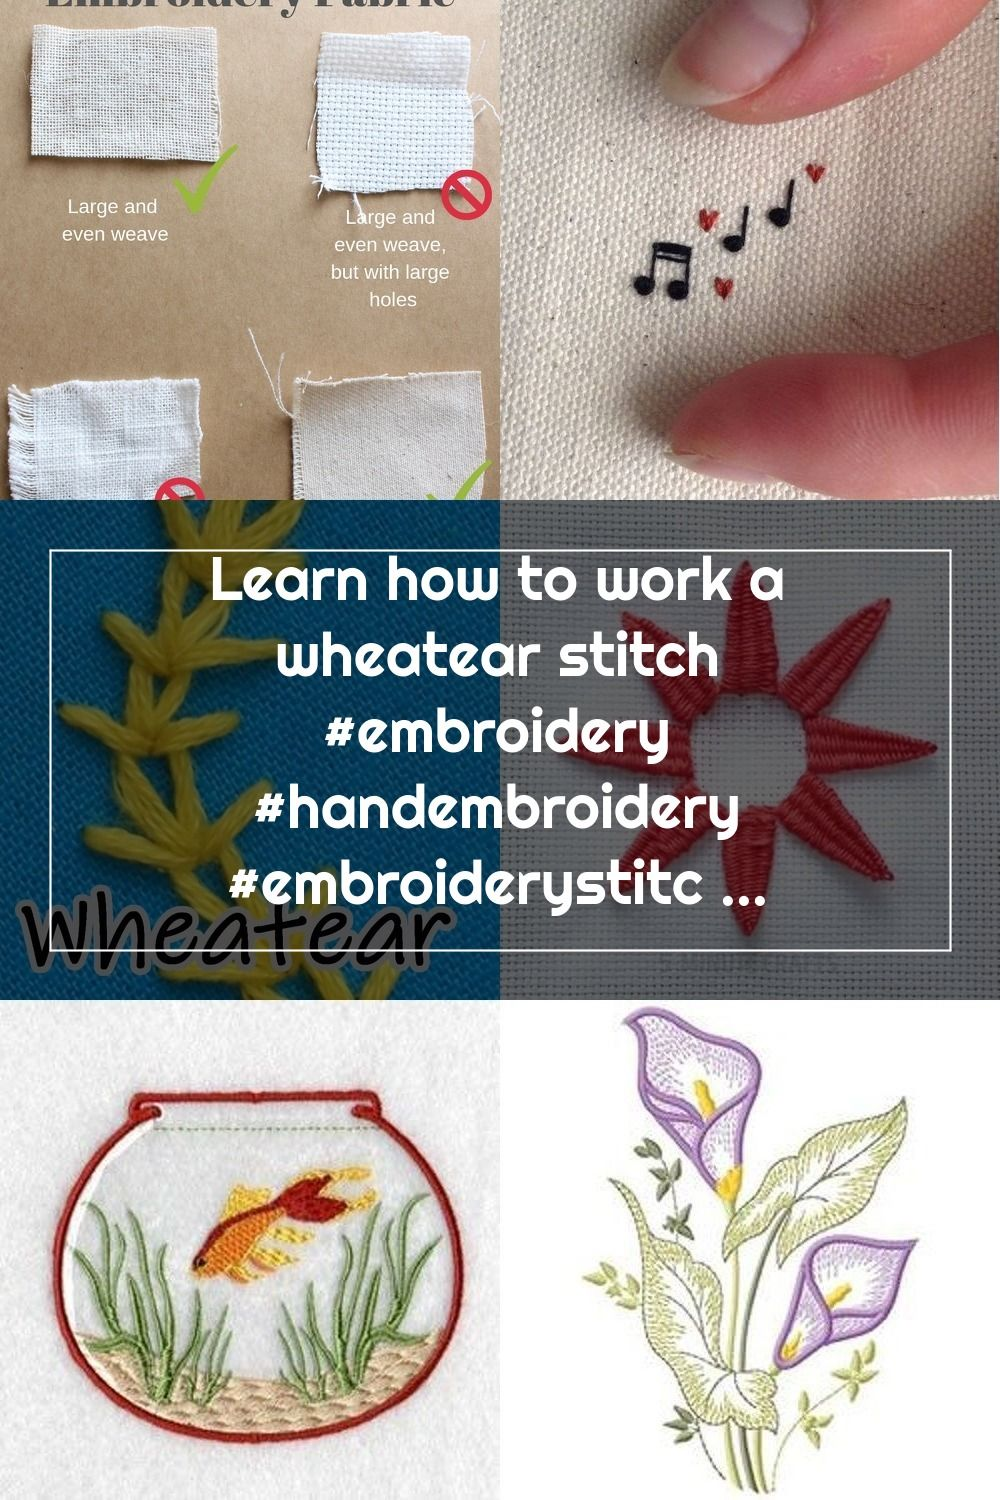 Learn how to work a wheatear stitch #embroidery #handembroidery #embroiderystitches